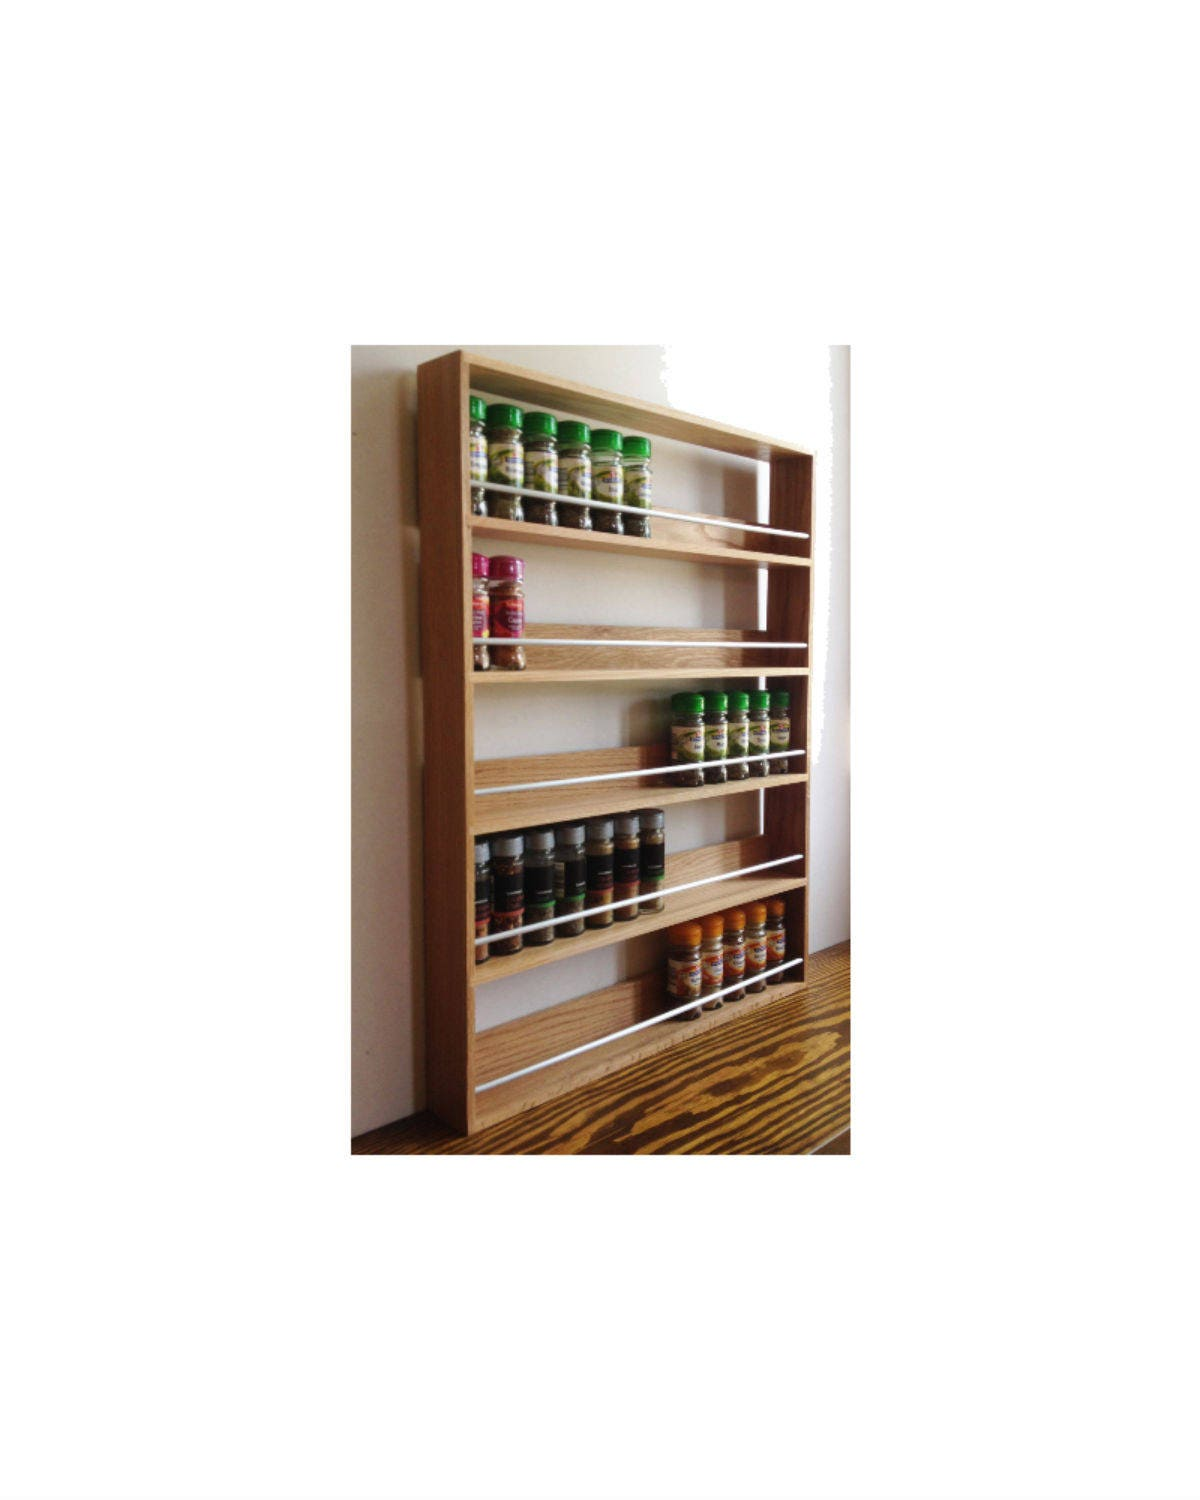 Kitchen Storage Cabinets Free Standing Uk: Solid Oak Spice Rack 5 Shelves Freestanding Or Wall Mounted